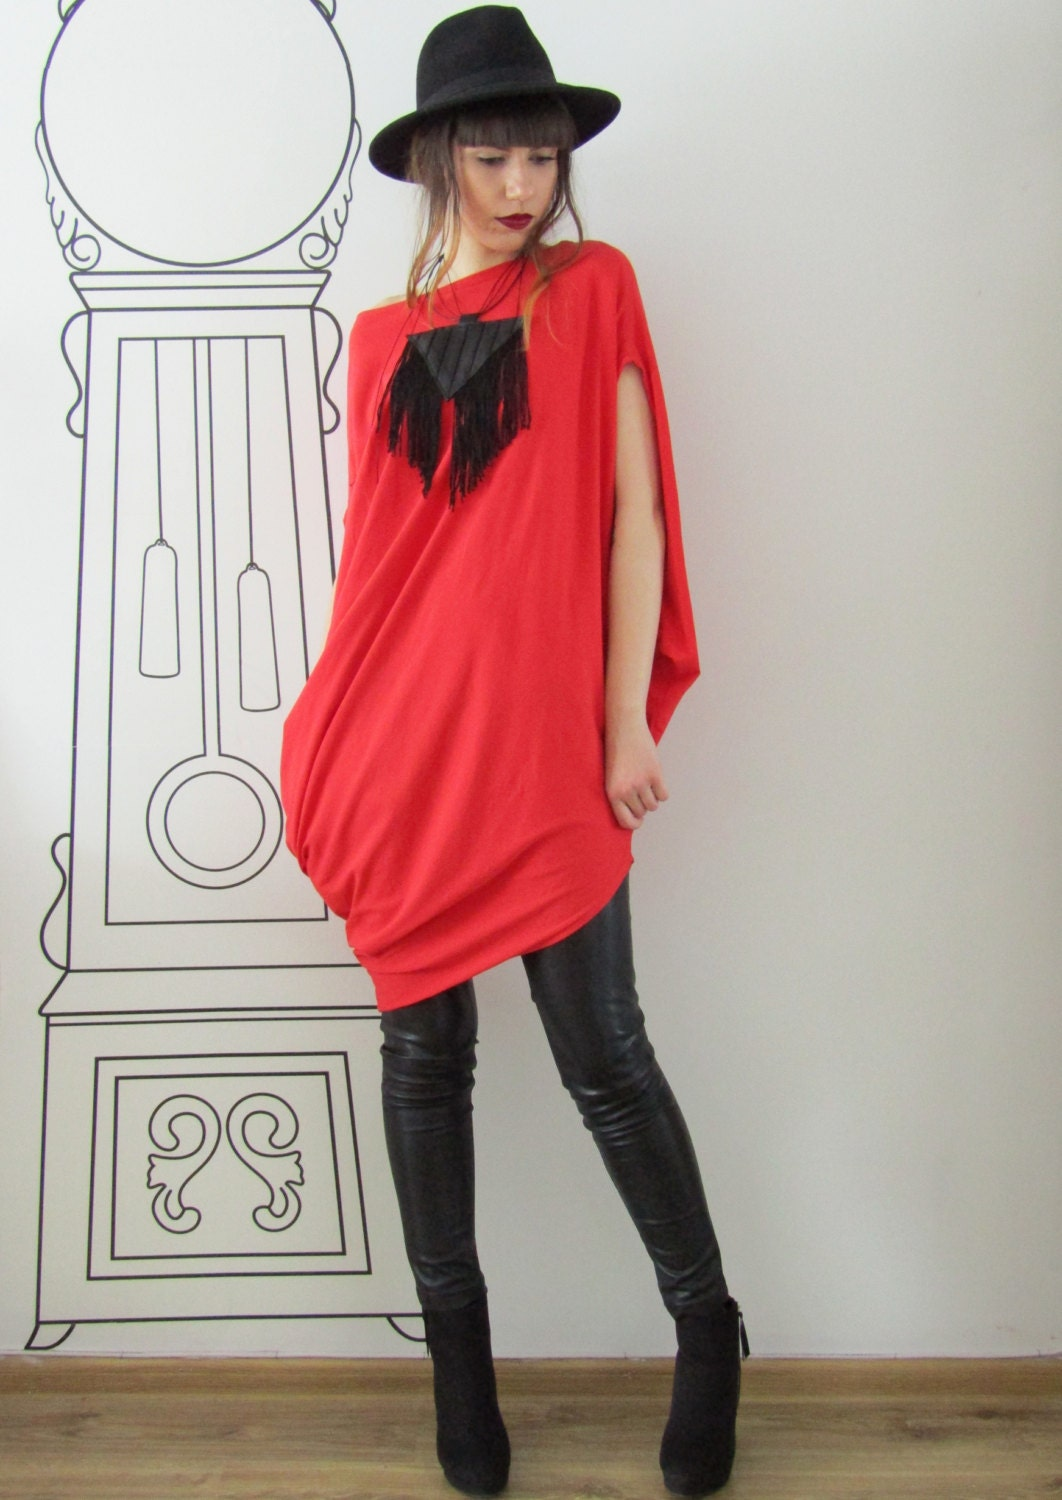 8b343058773 Extravagant Asymmetrical Red Tunic Top / T712